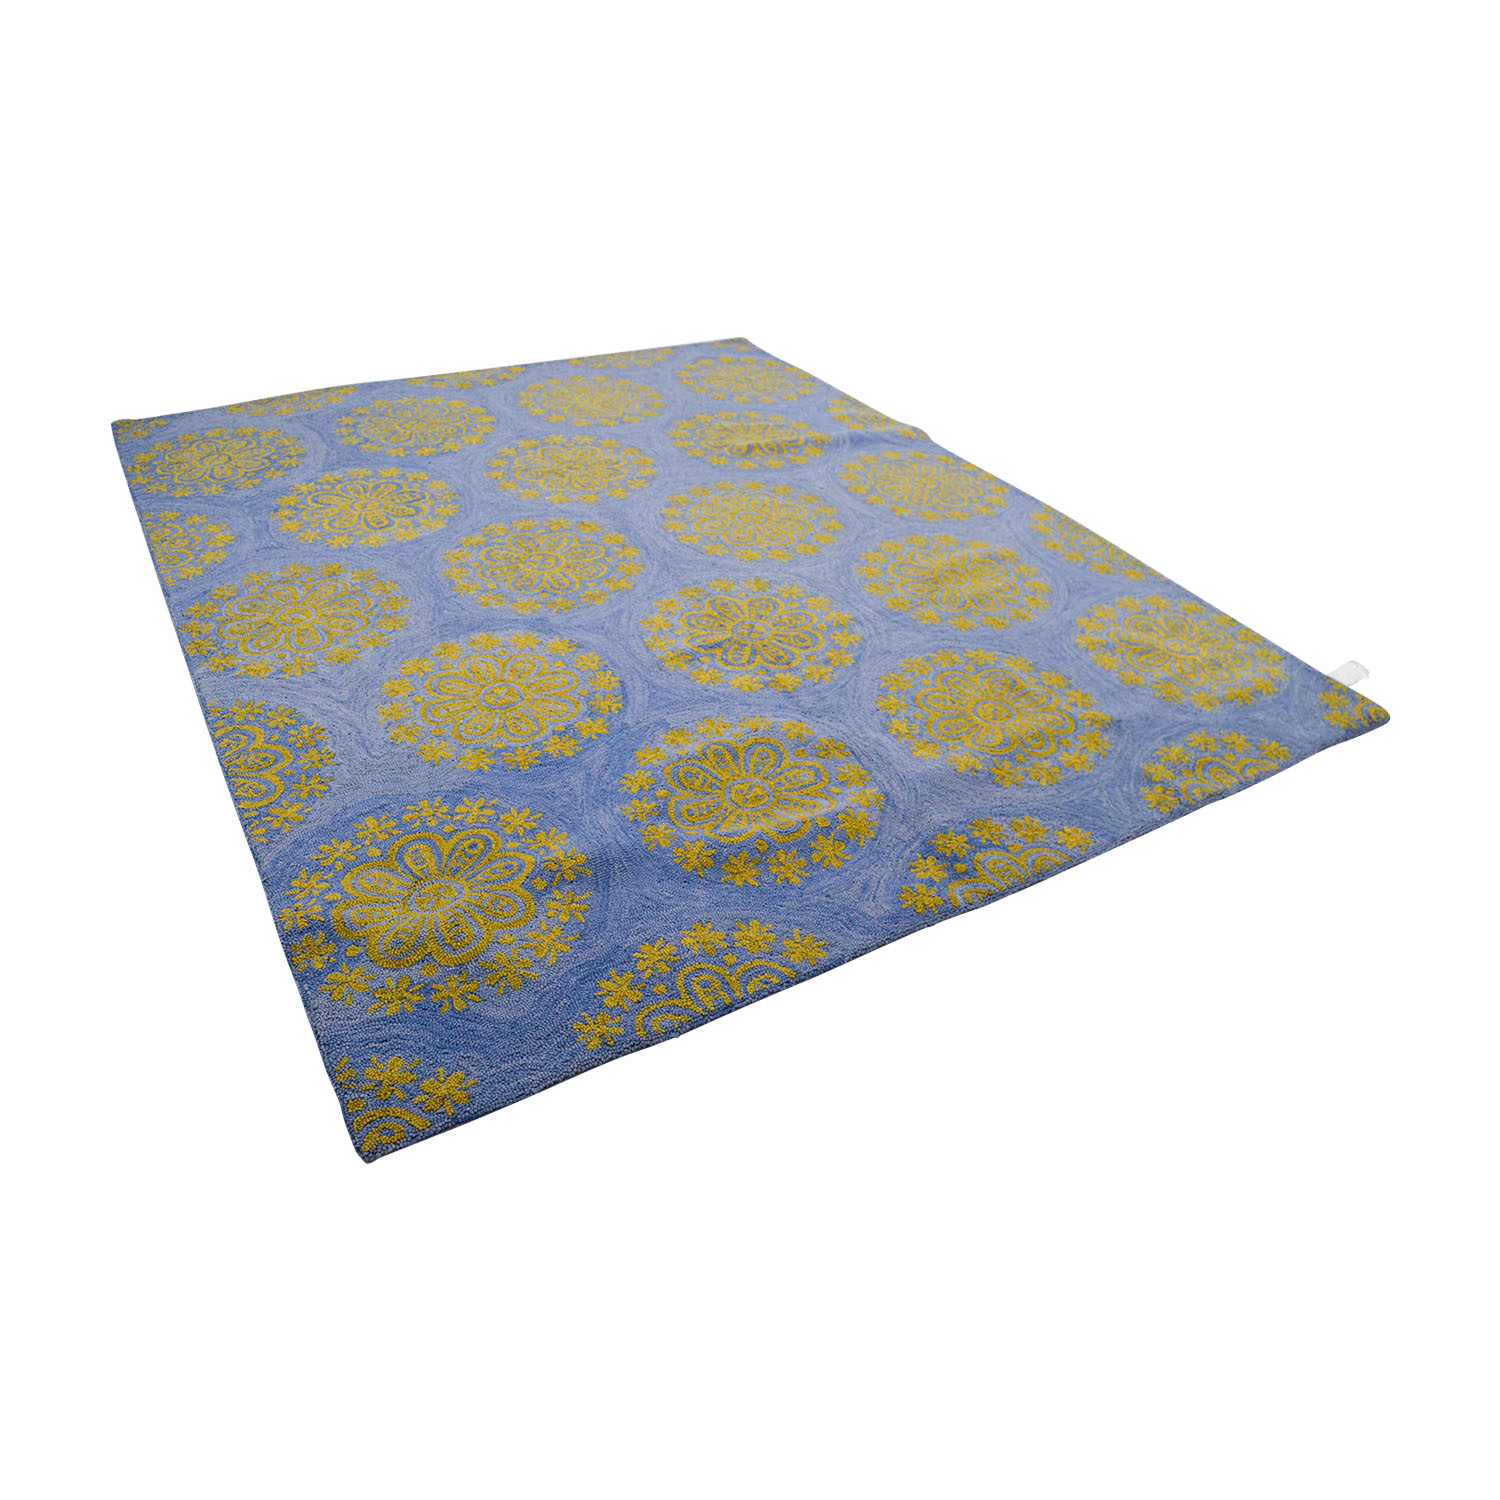 Obeetee Obeetee Hand Hooked Blue and Yellow Medallion Rug nyc